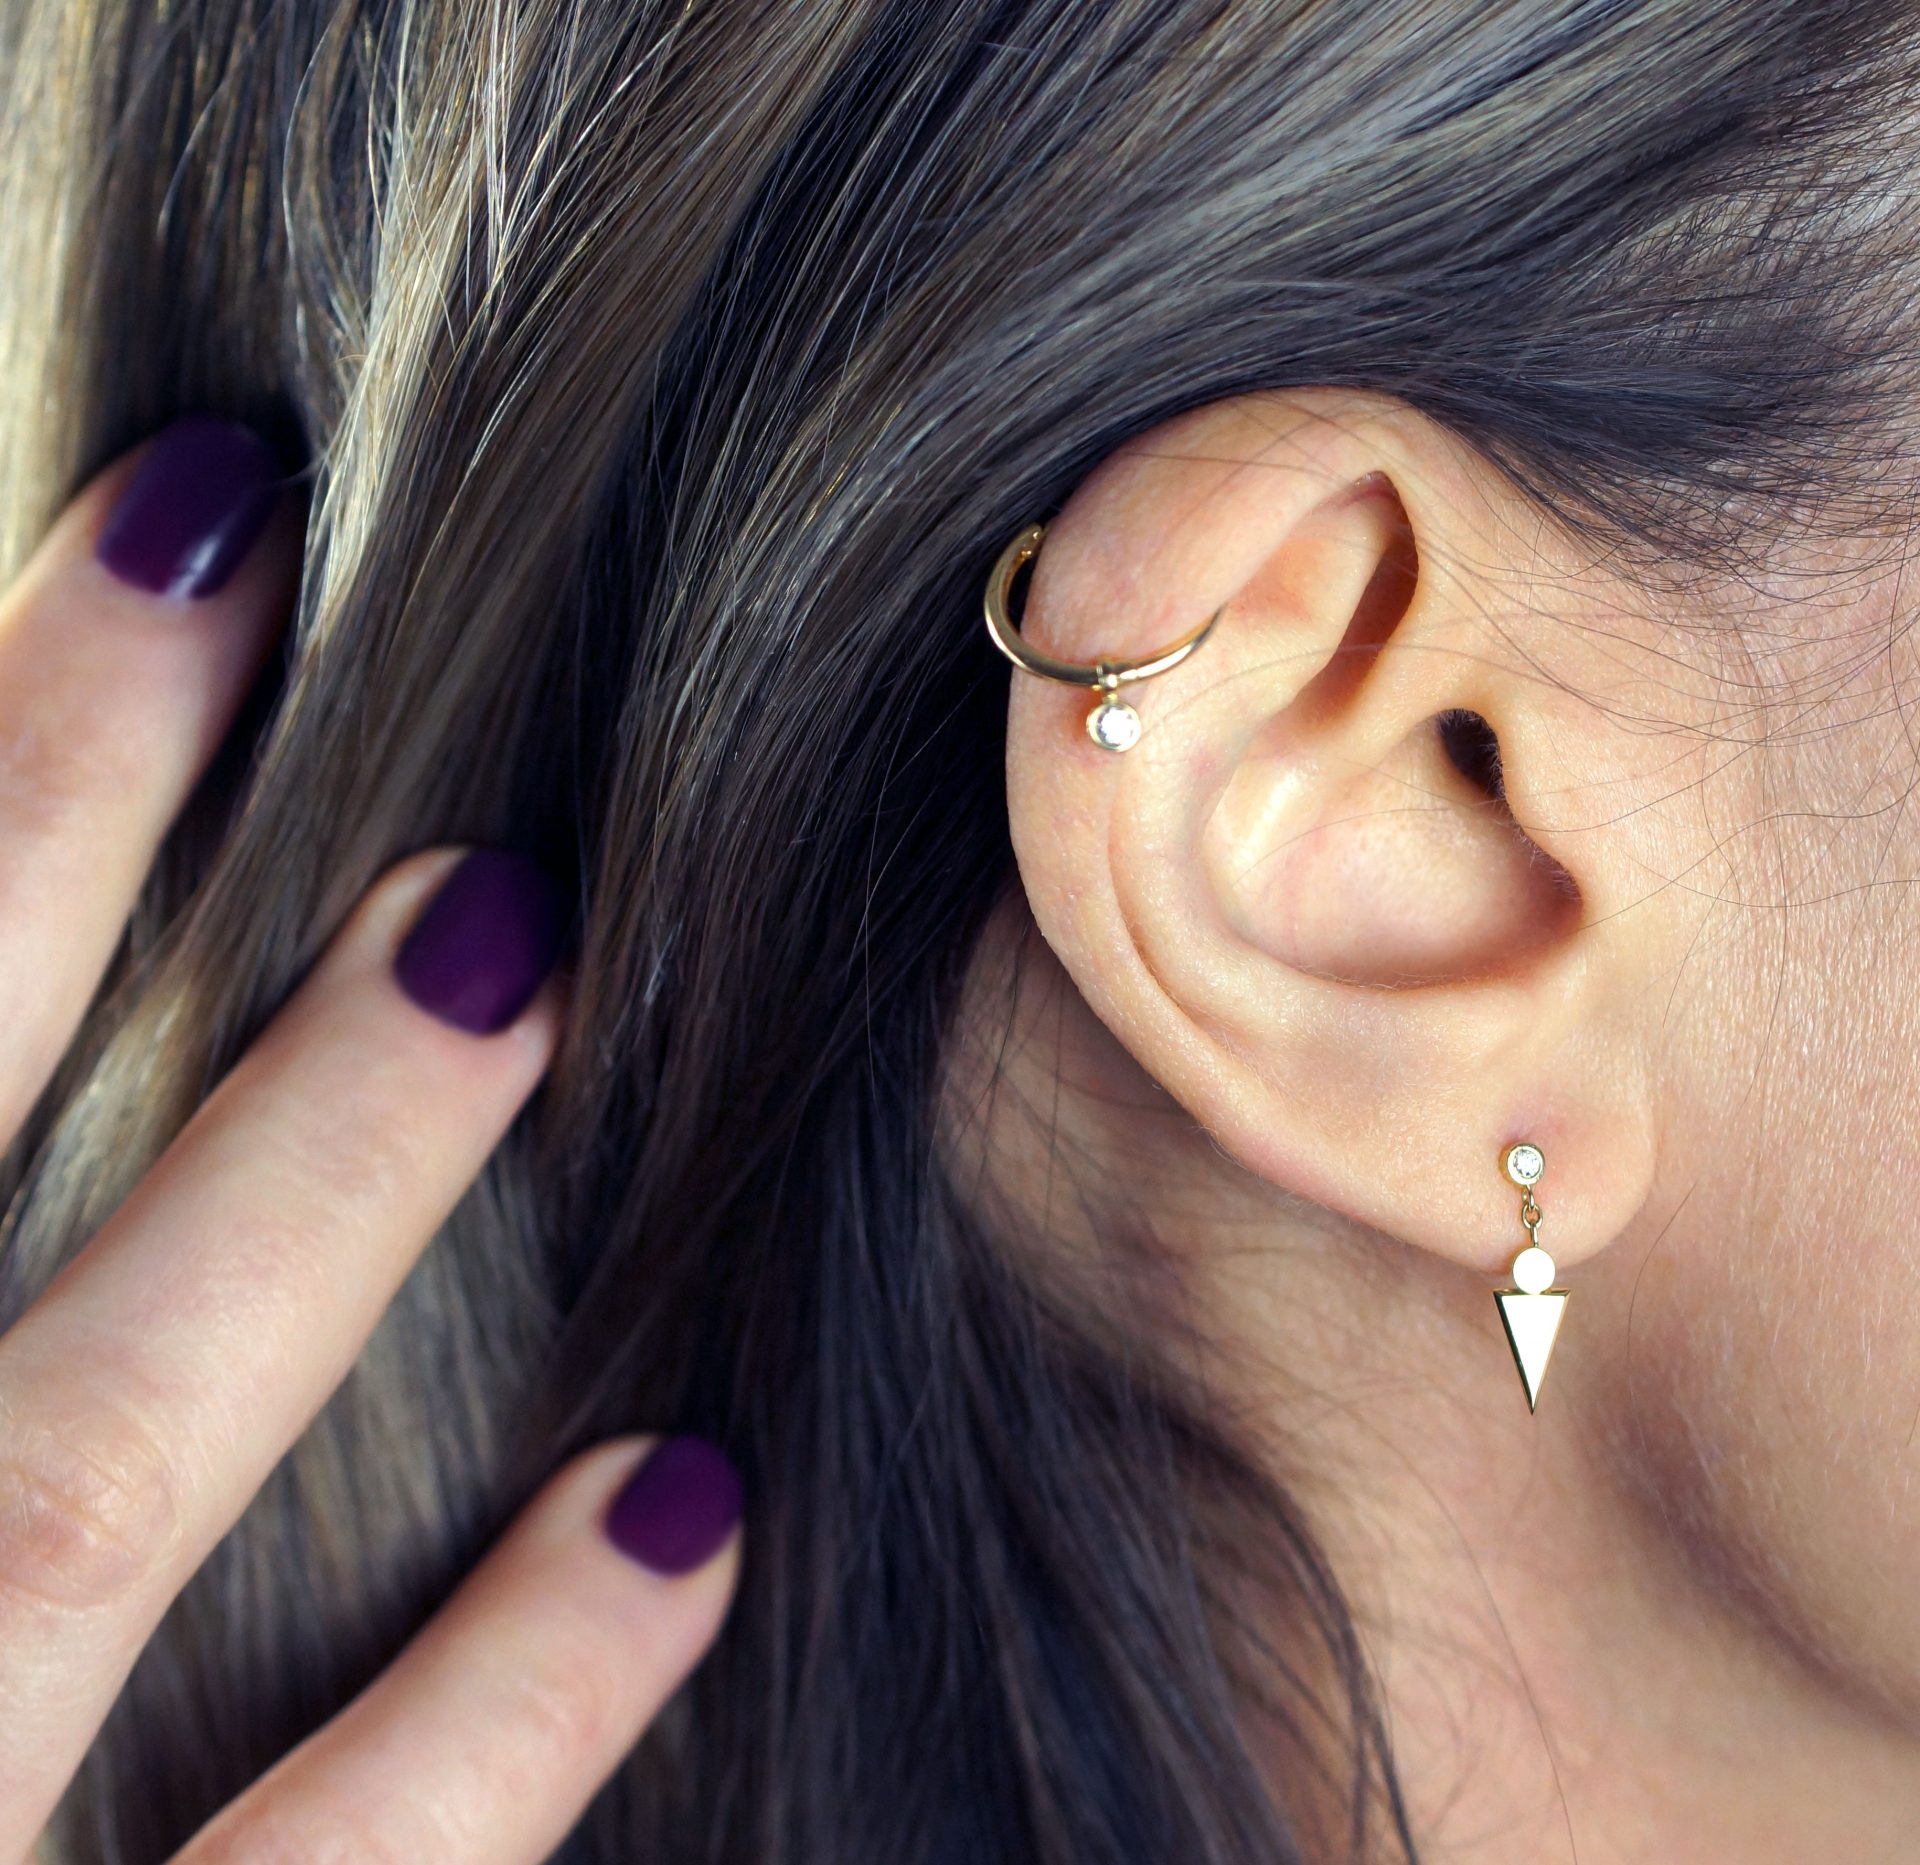 high quality cartilage earrings